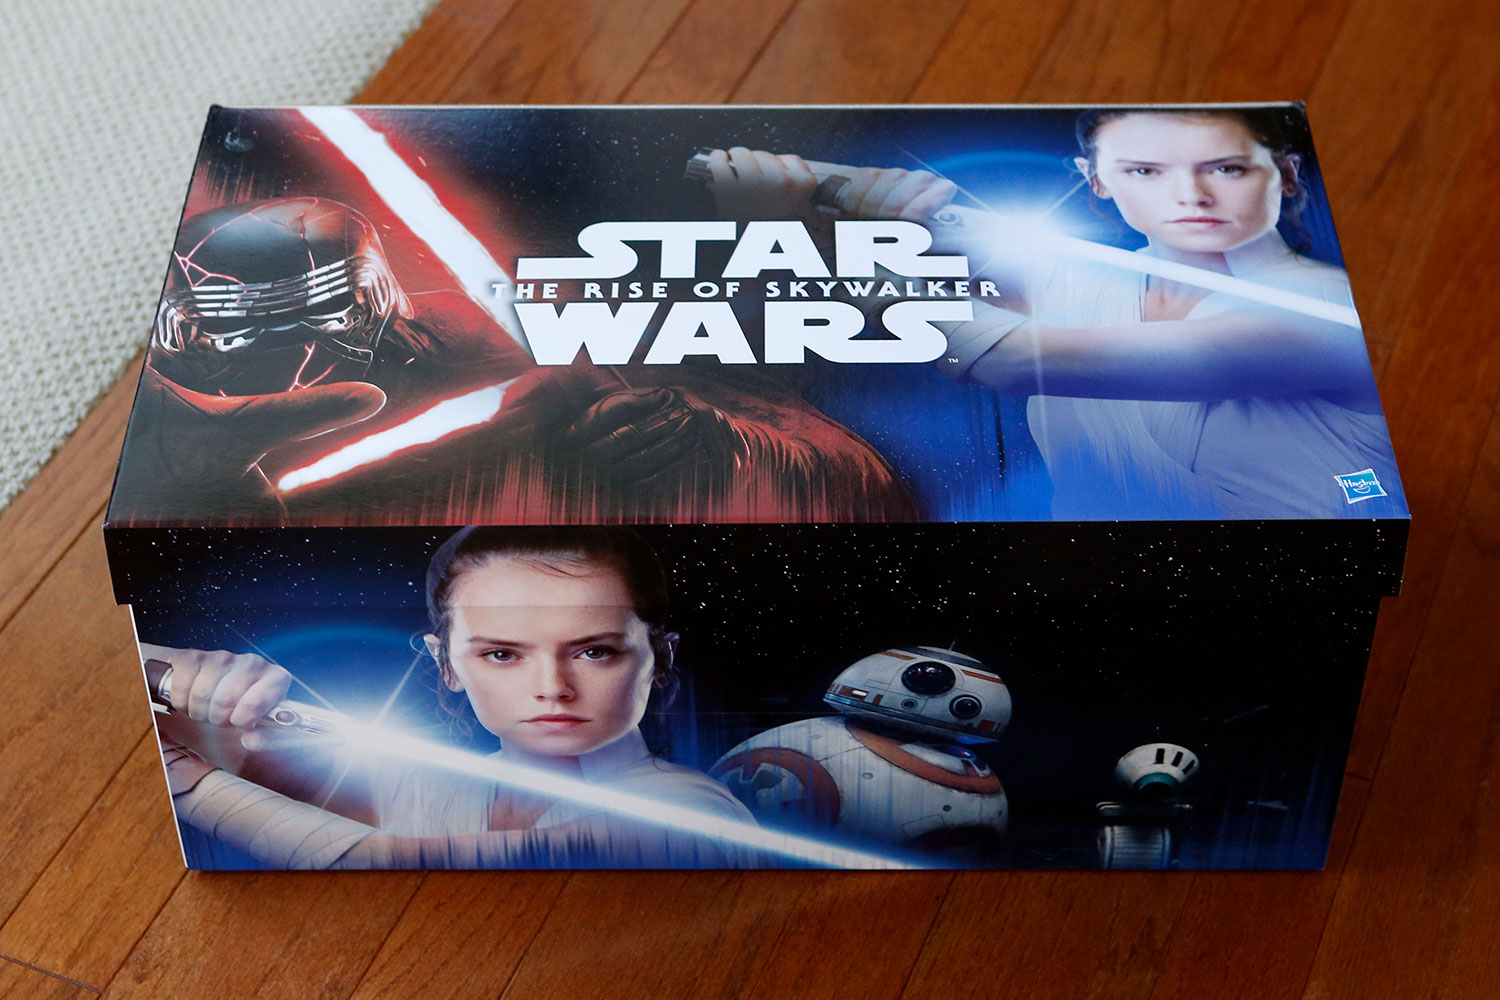 A Look Inside The Rise of Skywalker – Special Hasbro Package